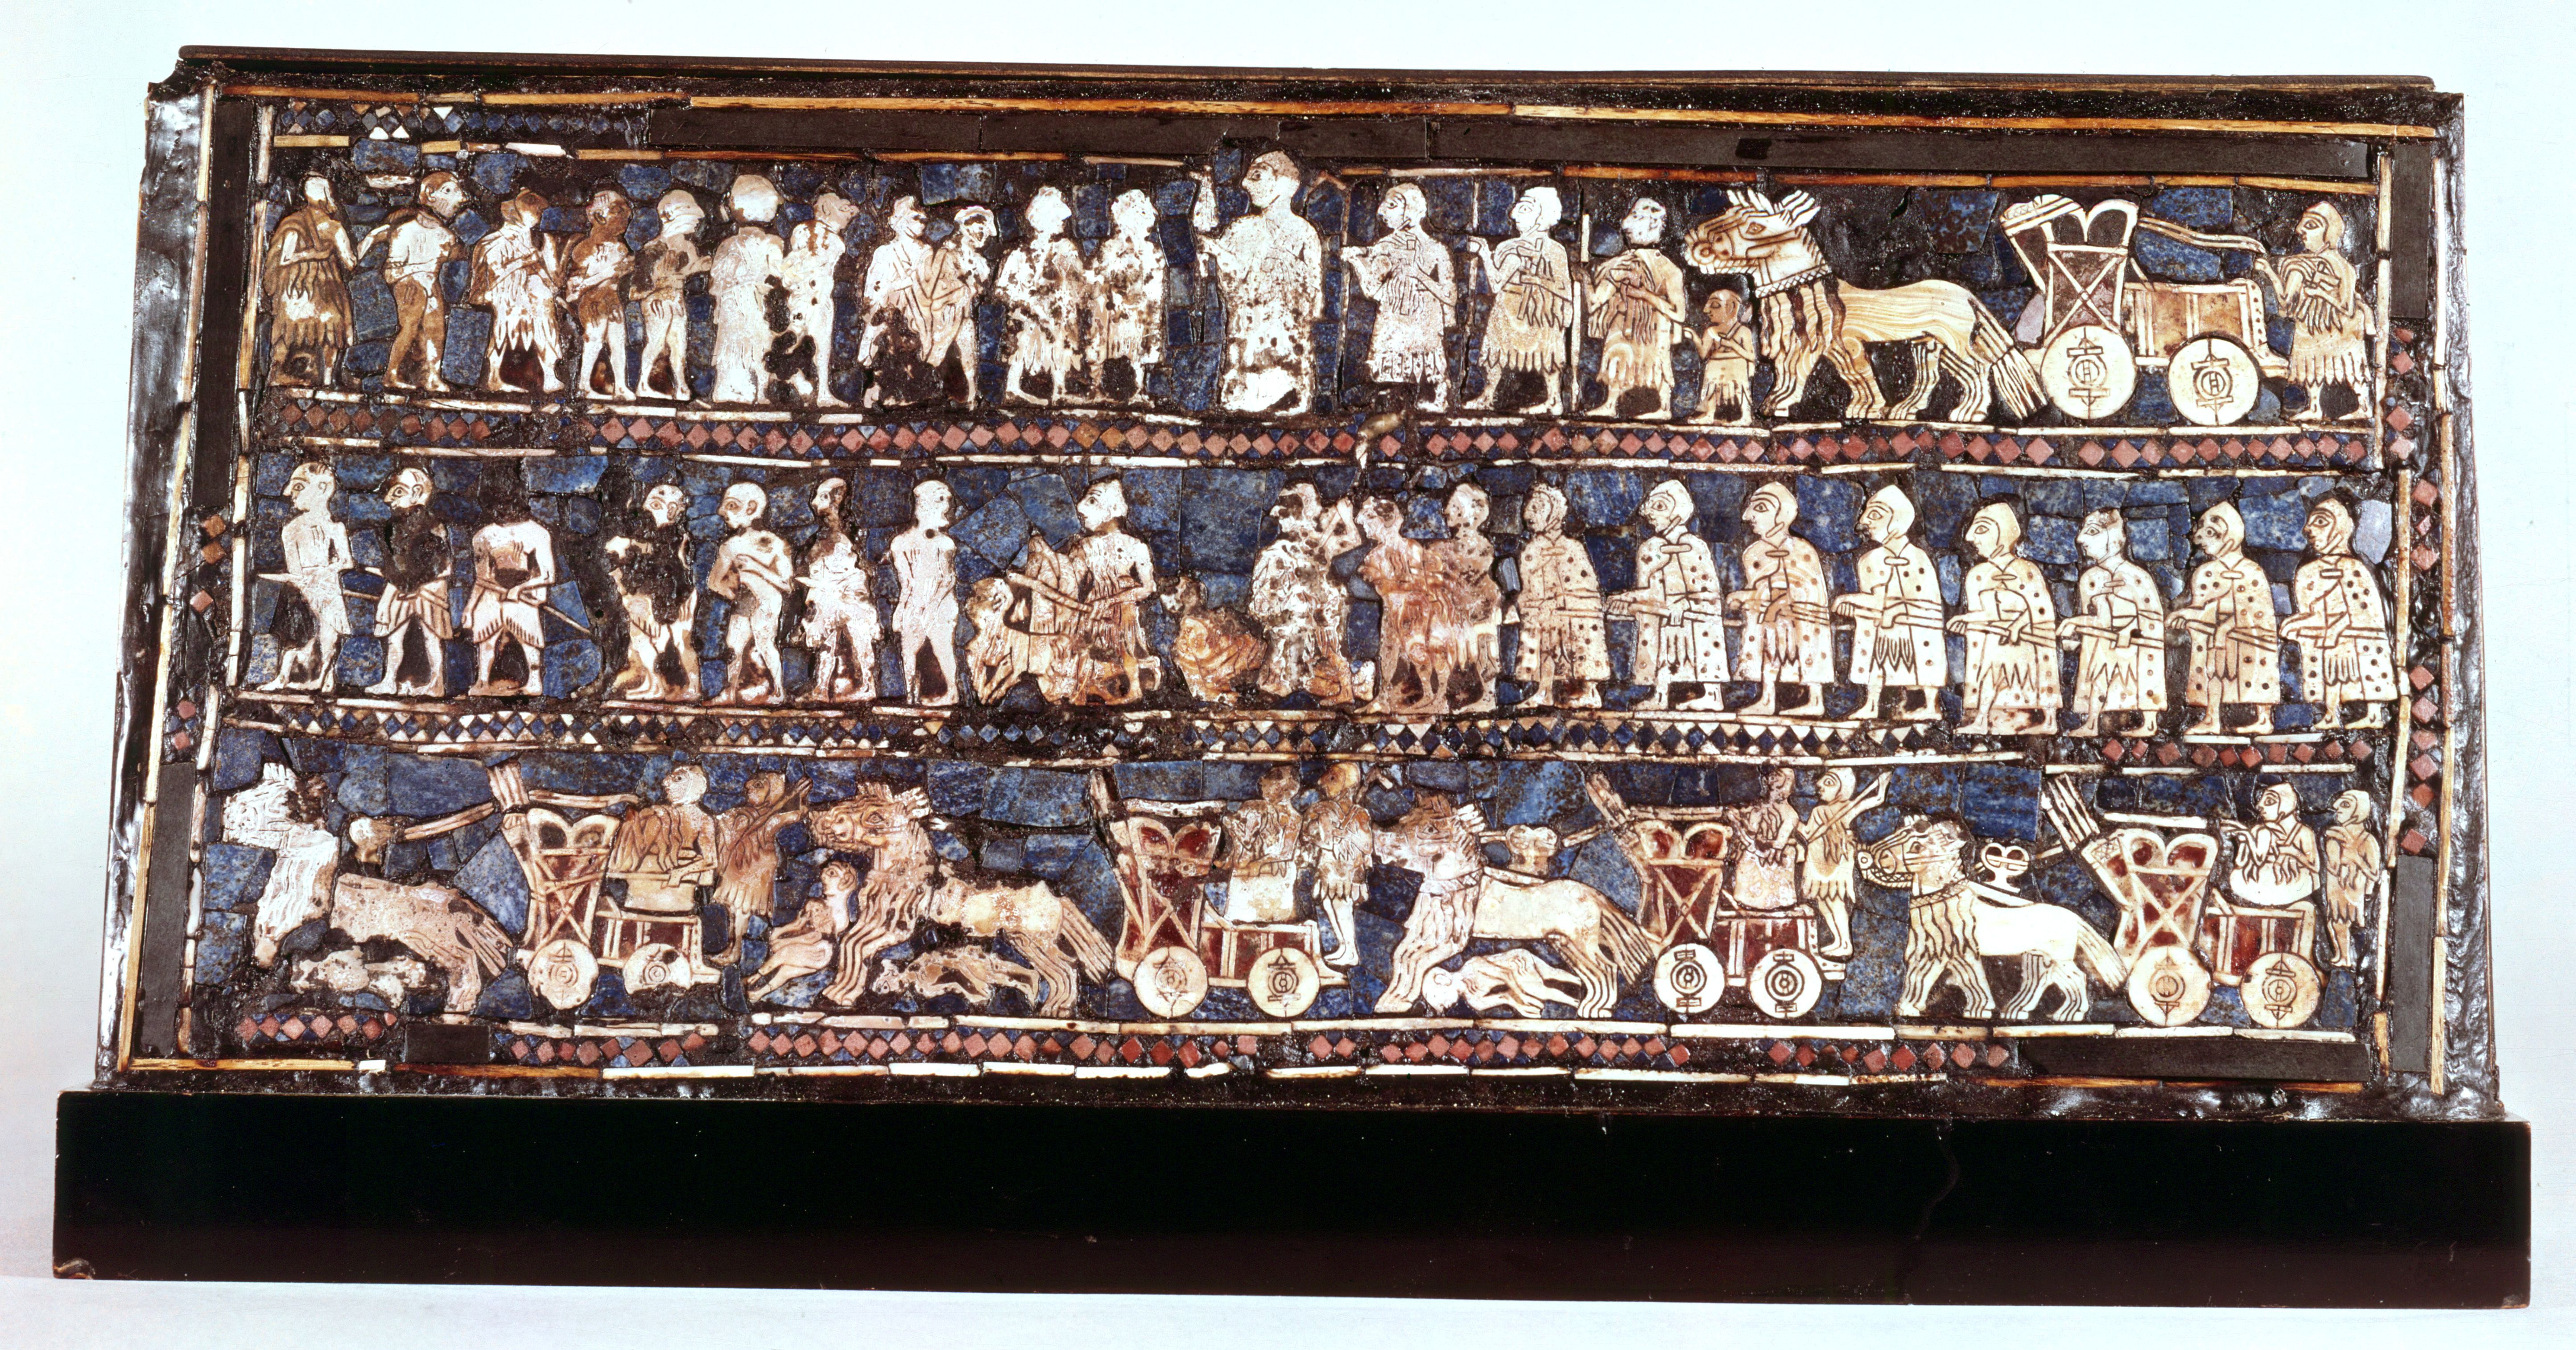 Standard of Ur, the war side, from the Royal Cemetery at Ur, Sumerian, c2500 BC.